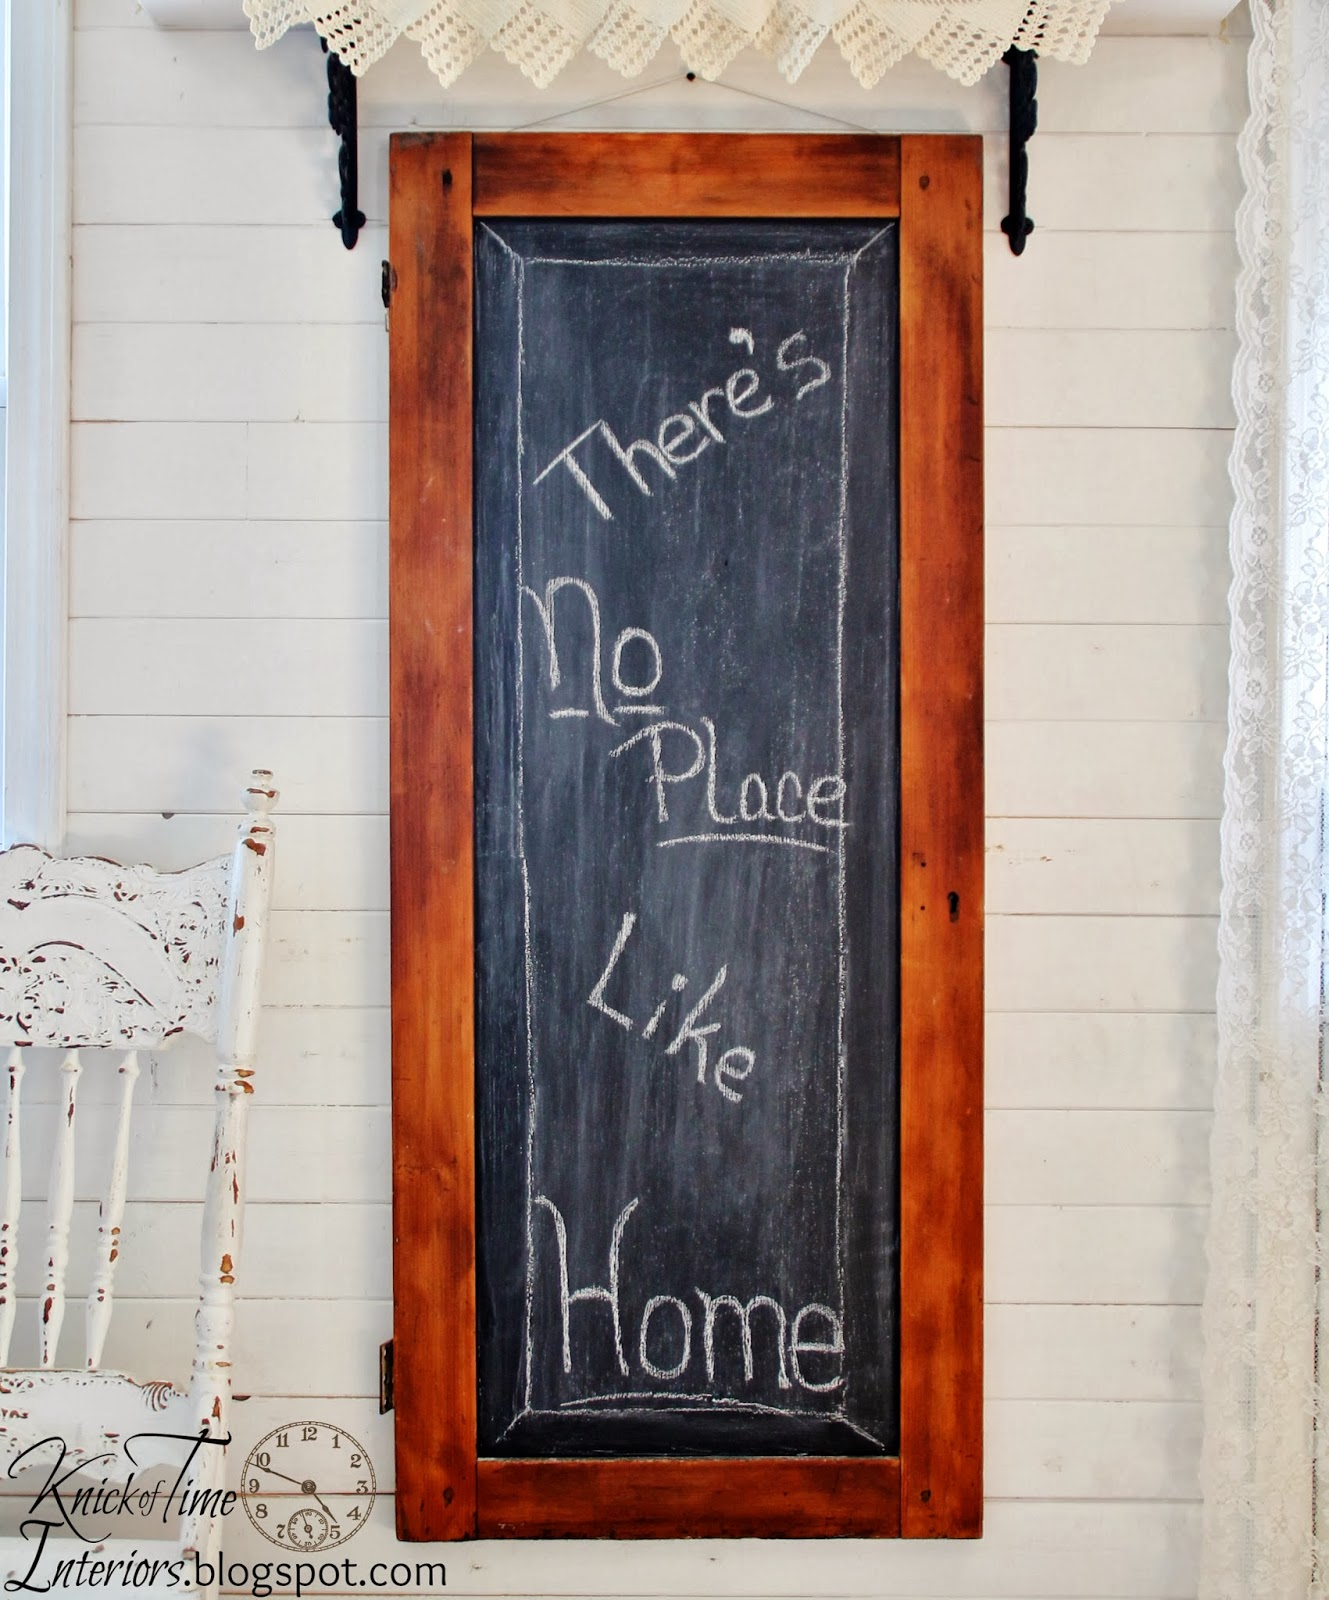 Repurposed Antique Cabinet Door Into Chalkboard Knick Of Time